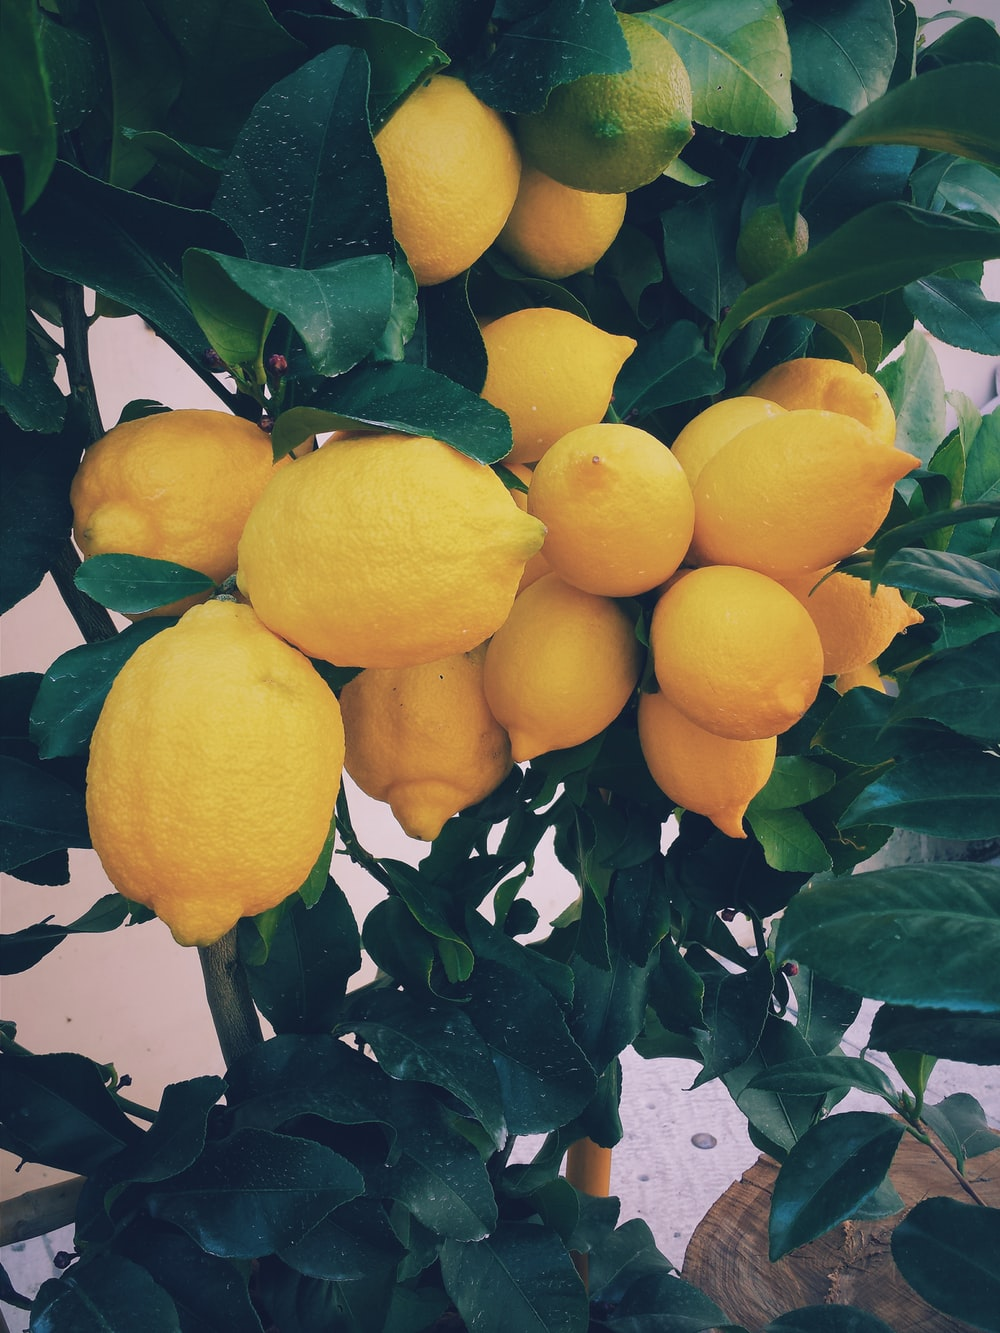 Free Download 750 Lemon Pictures Hd Download Images Stock Photos